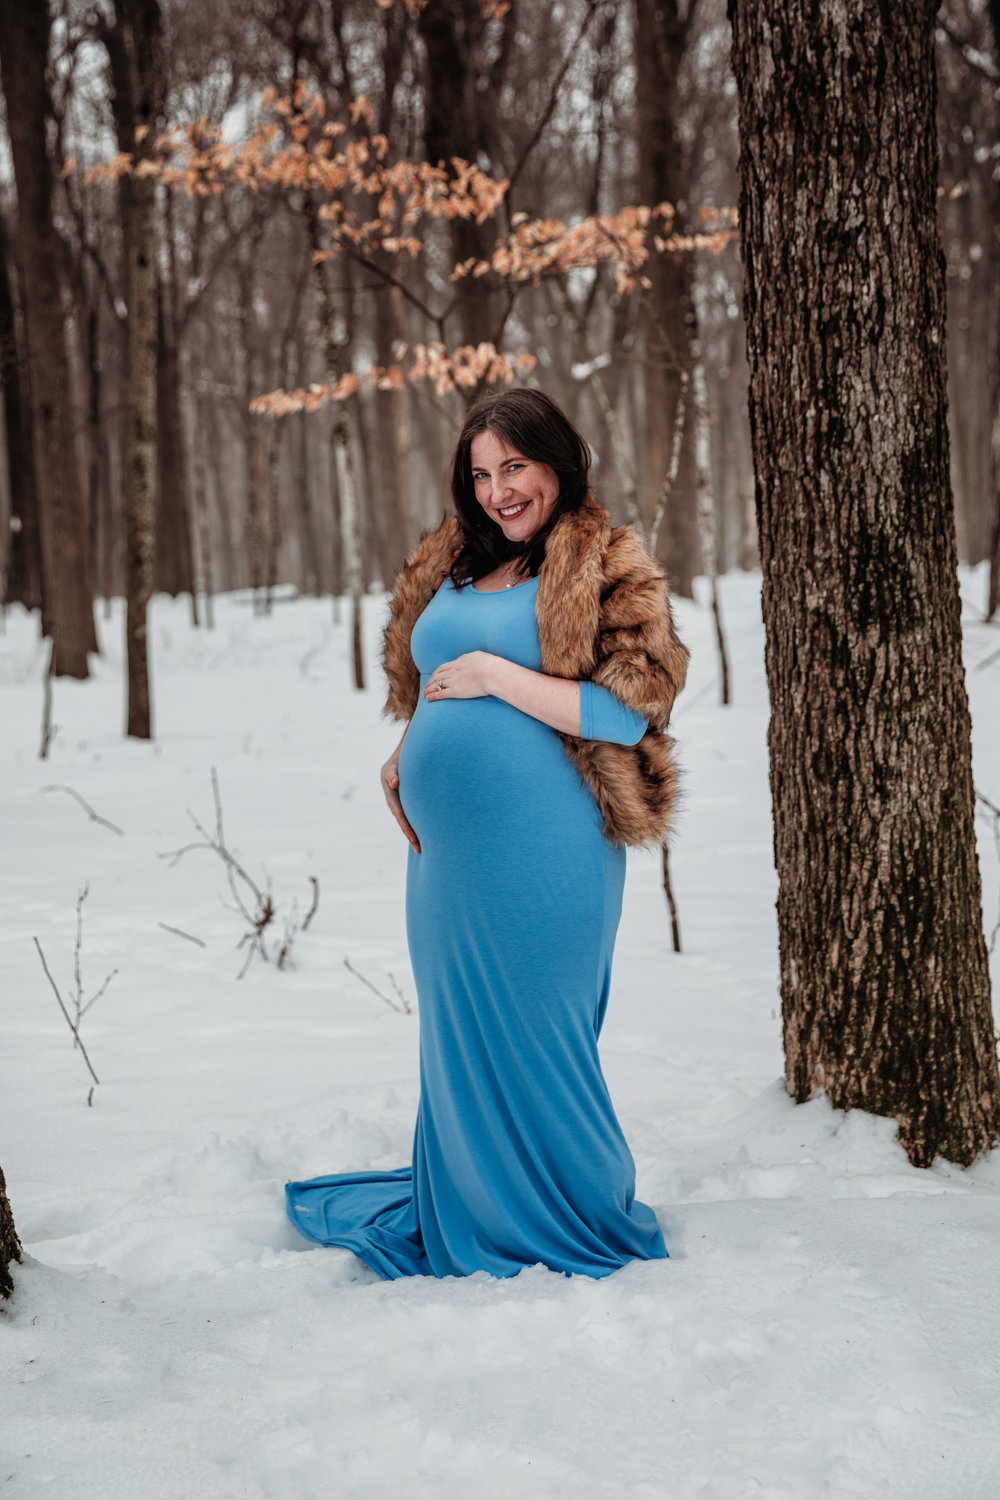 austin-minnesota-maternity-photography-session-outdoors